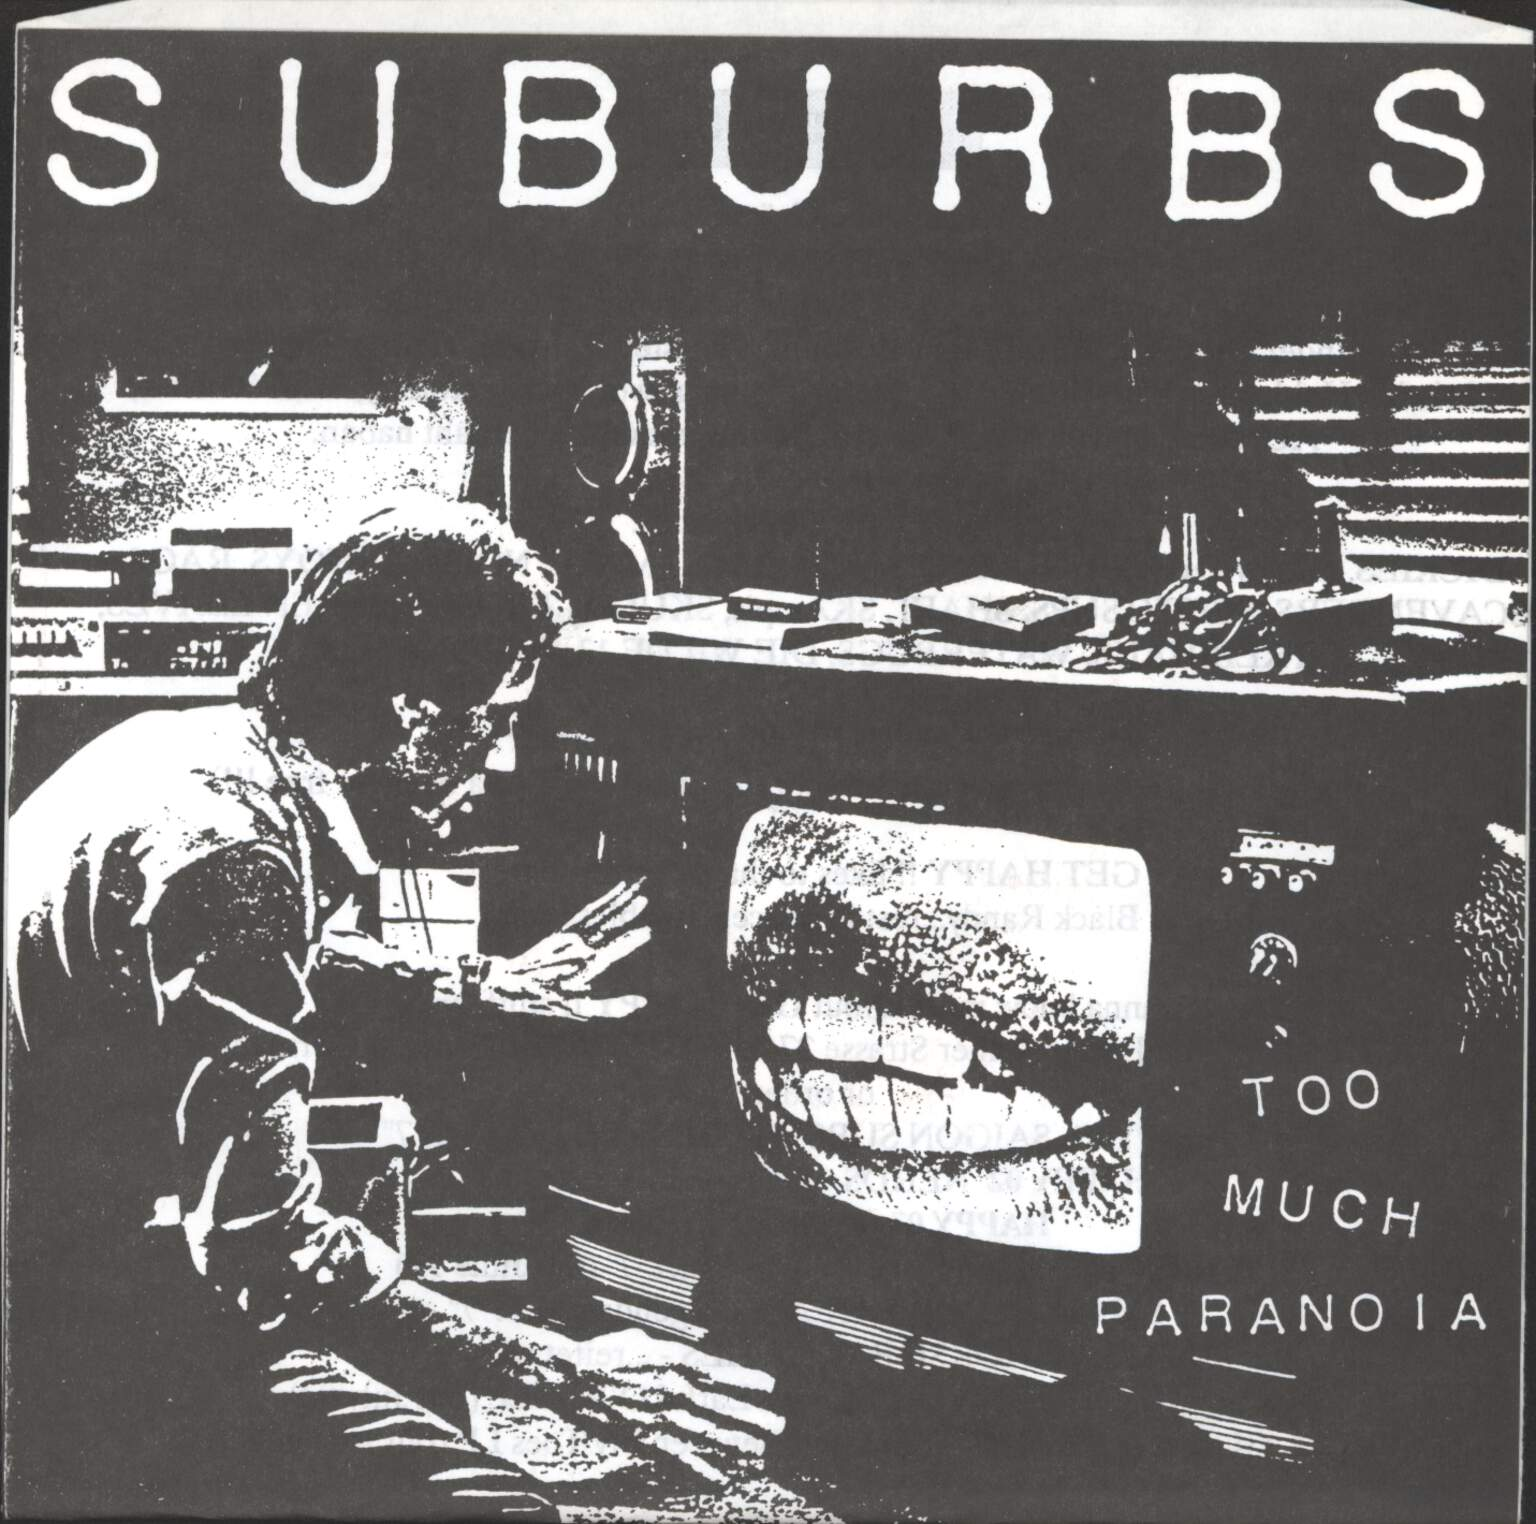 "Suburbs: Too Much Paranoia, 7"" Single (Vinyl)"